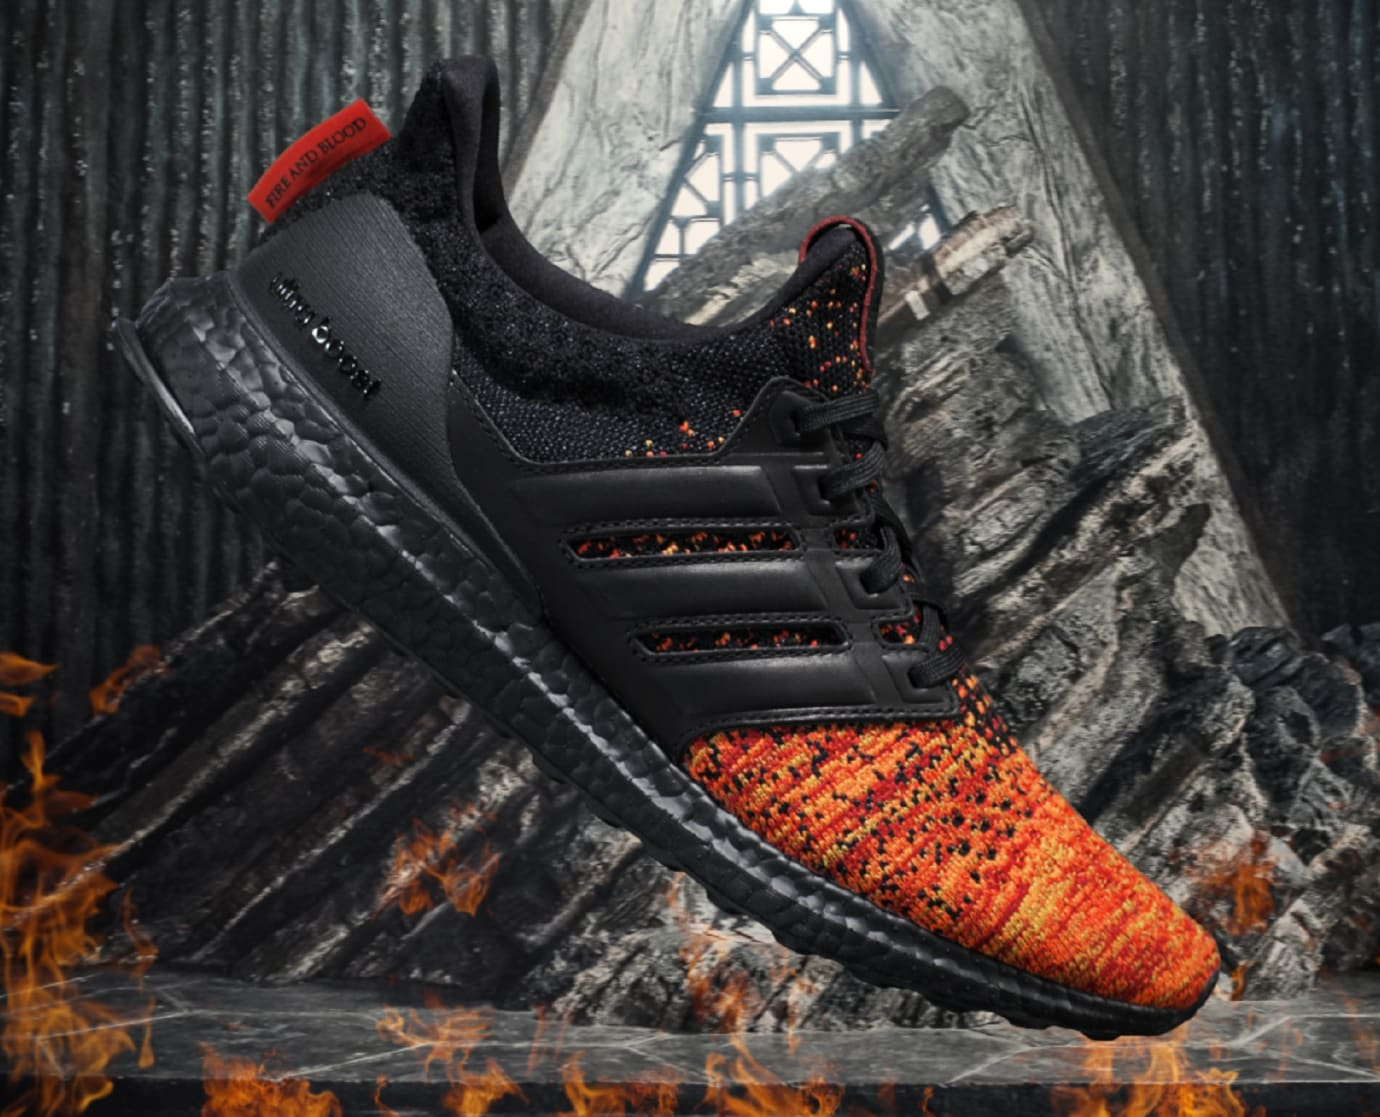 'Game of Thrones' x Adidas Ultra Boost 'House Targaryen' 2